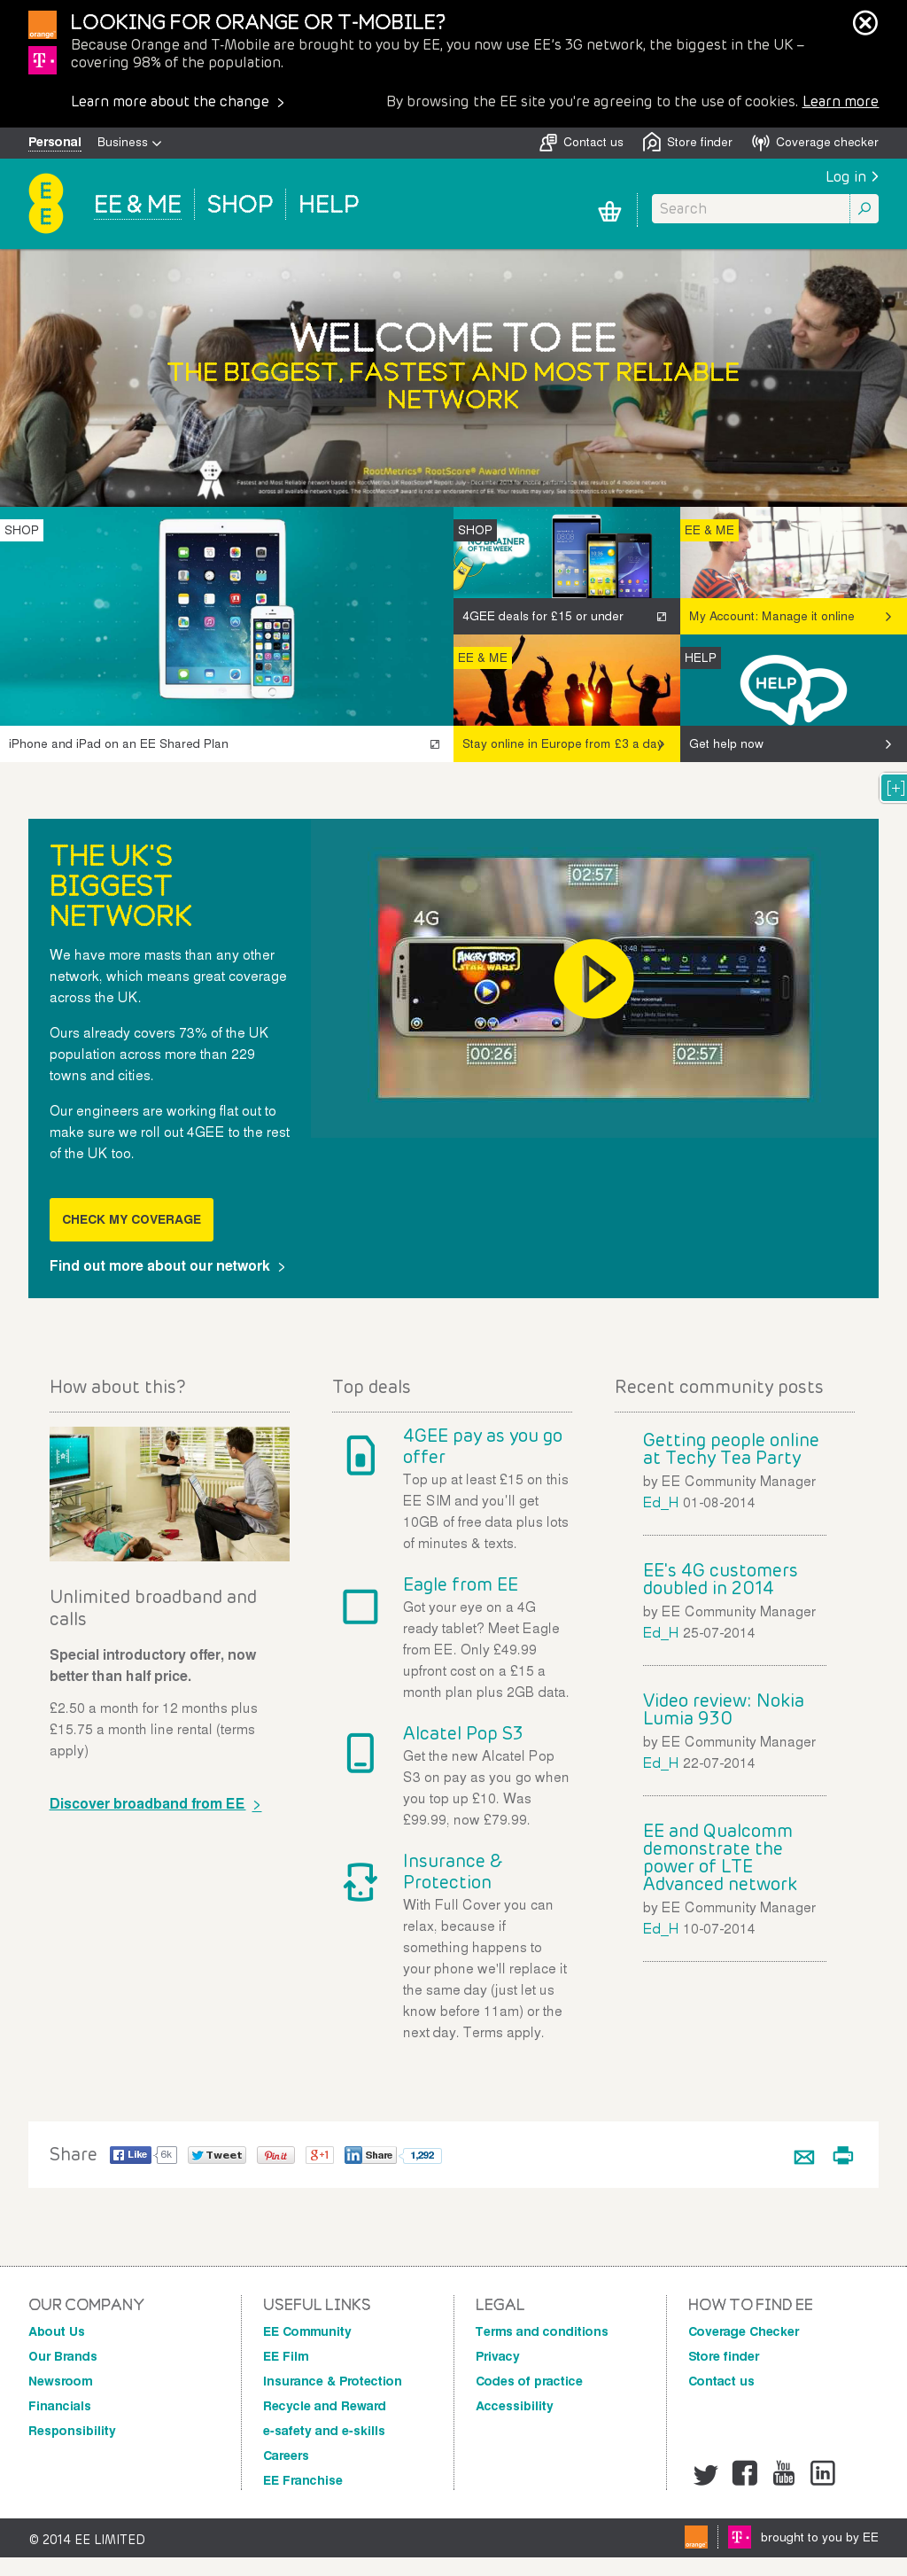 Ee S Competitors Revenue Number Of Employees Funding Acquisitions News Owler Company Profile